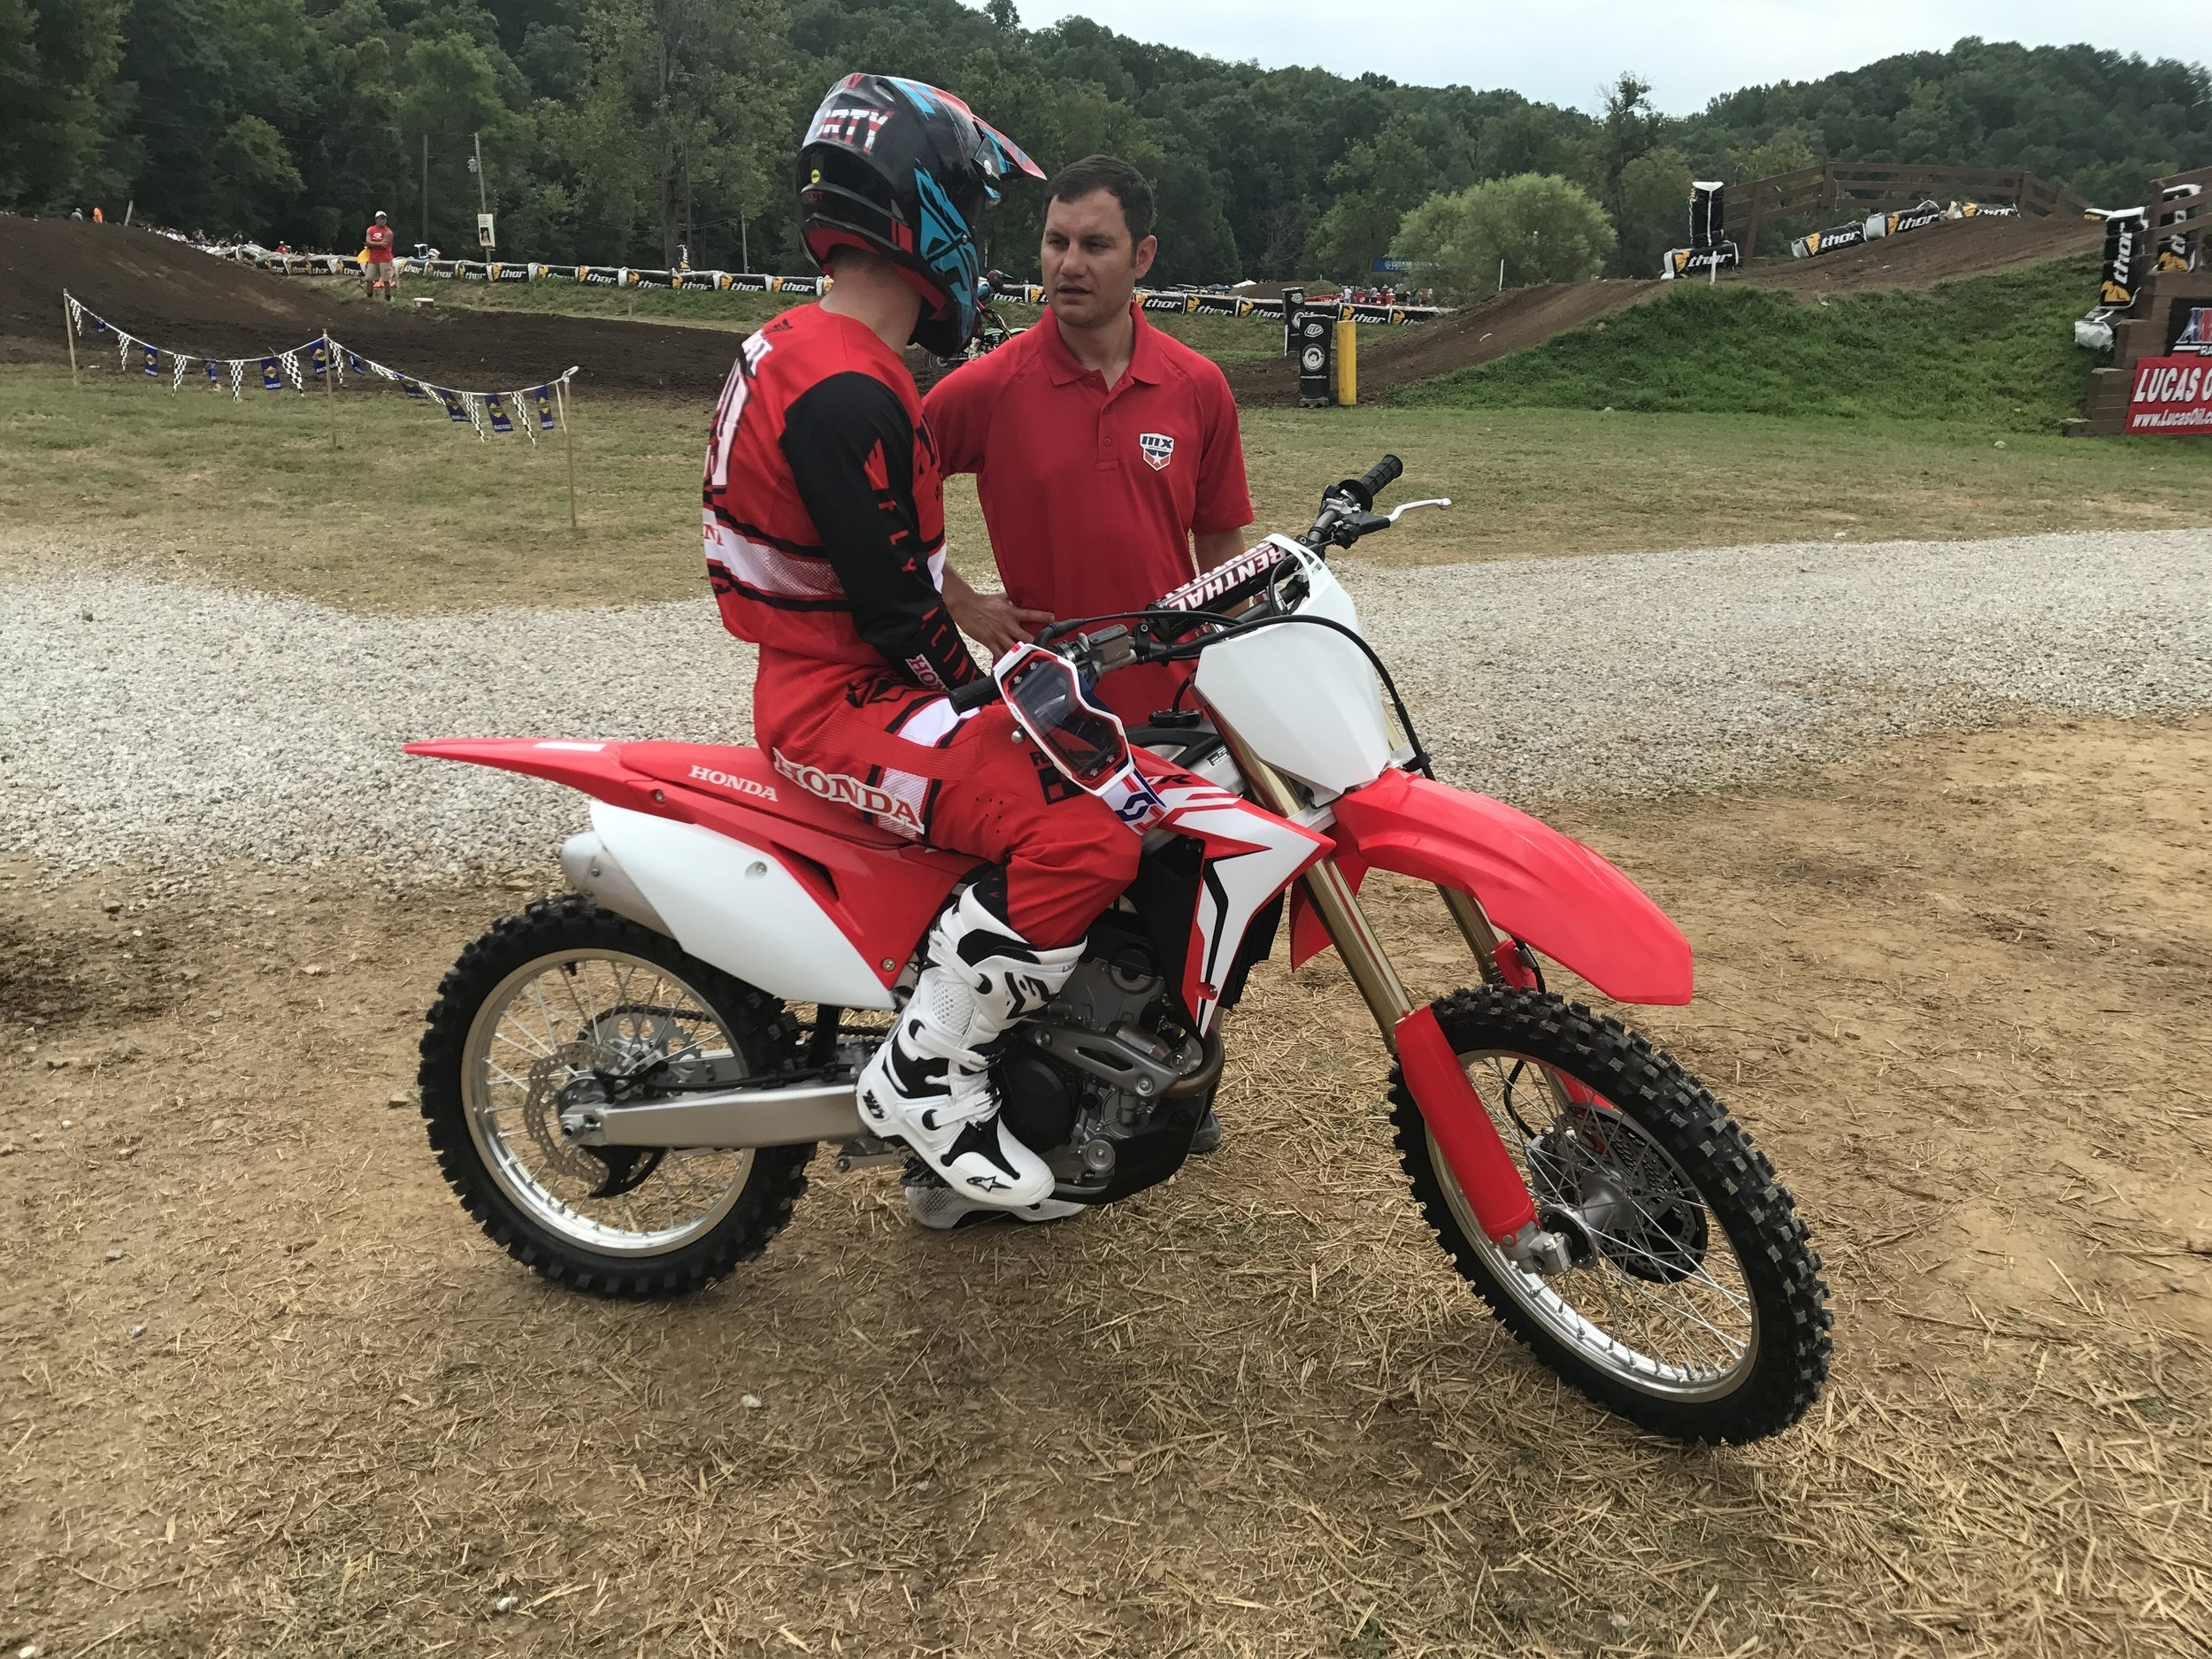 The day after the unveiling, Honda Brand Ambassador Andrew Short debuted the bike in action on the Loretta Lynn Ranch track, then stopped for an interview with announcer Jason Weigandt.